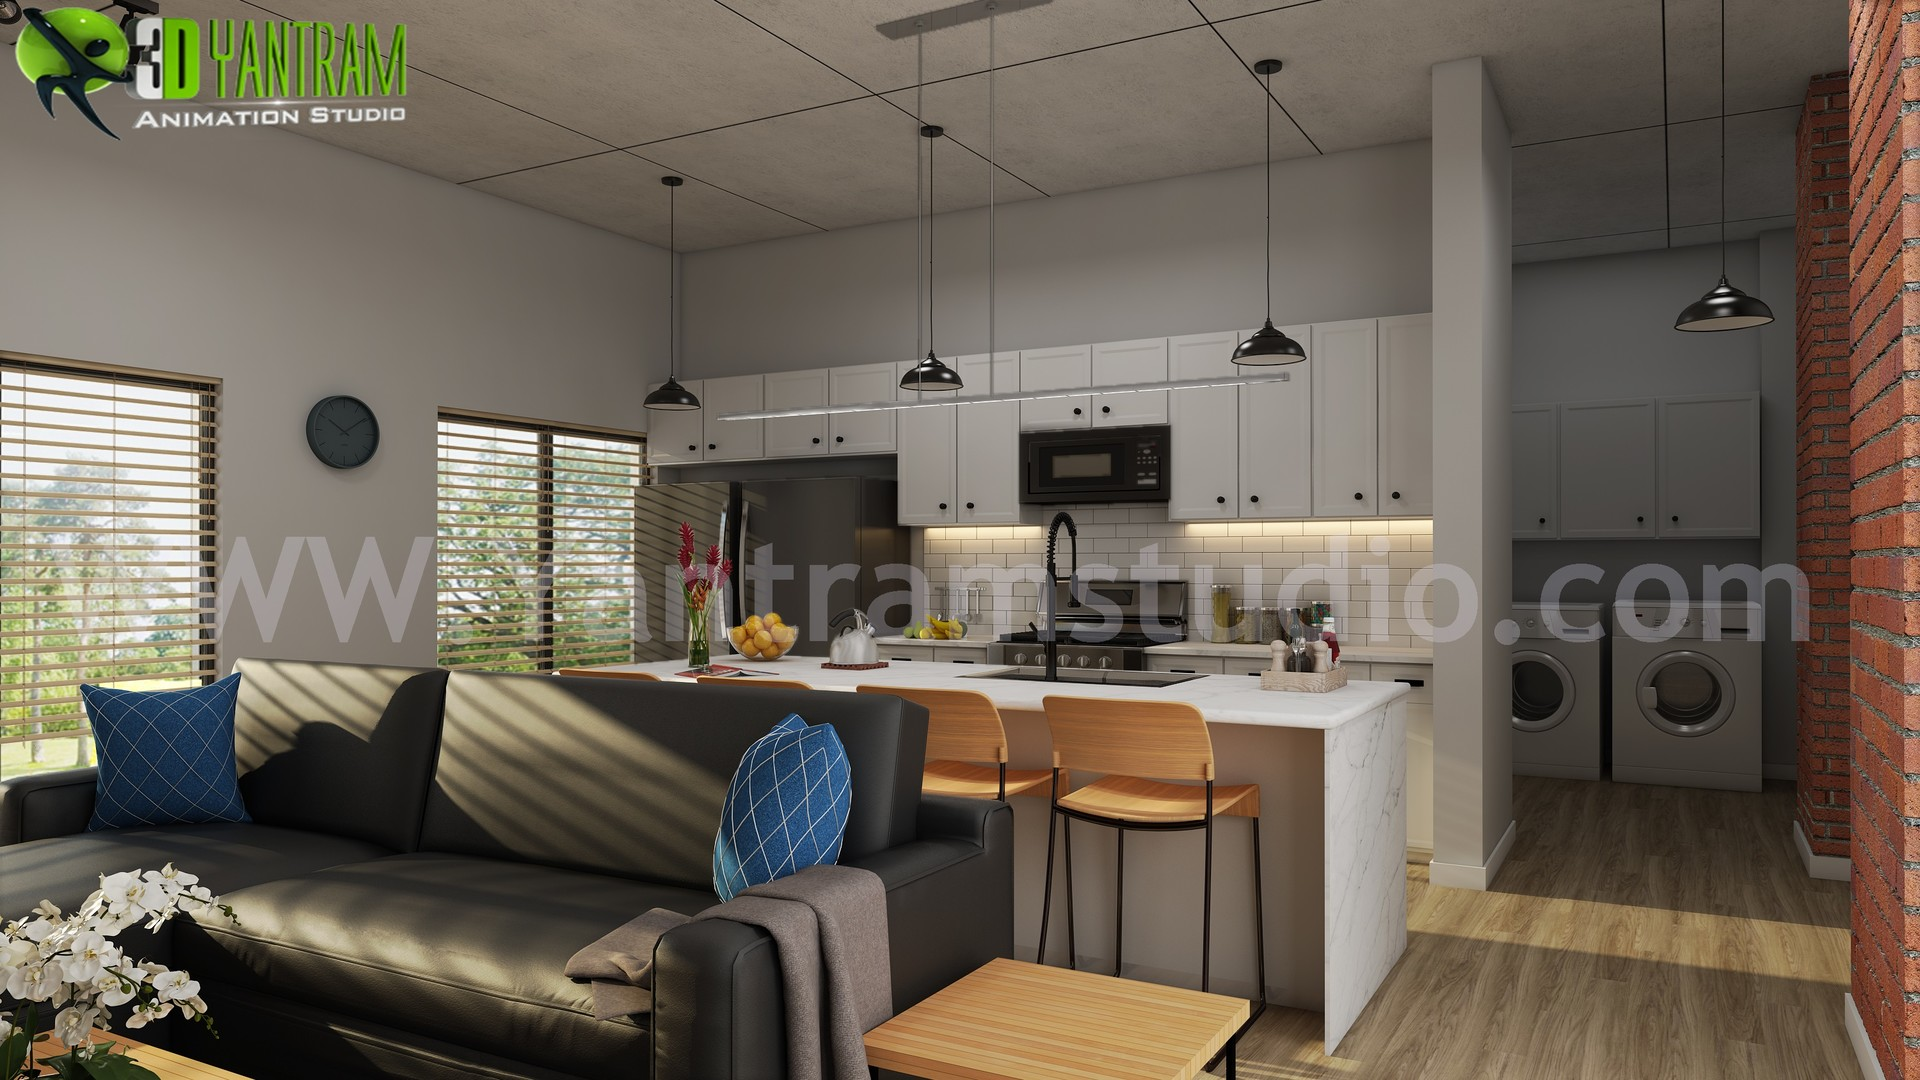 Artstation Modern Small Kitchen Design Ideas By Yantram 3d